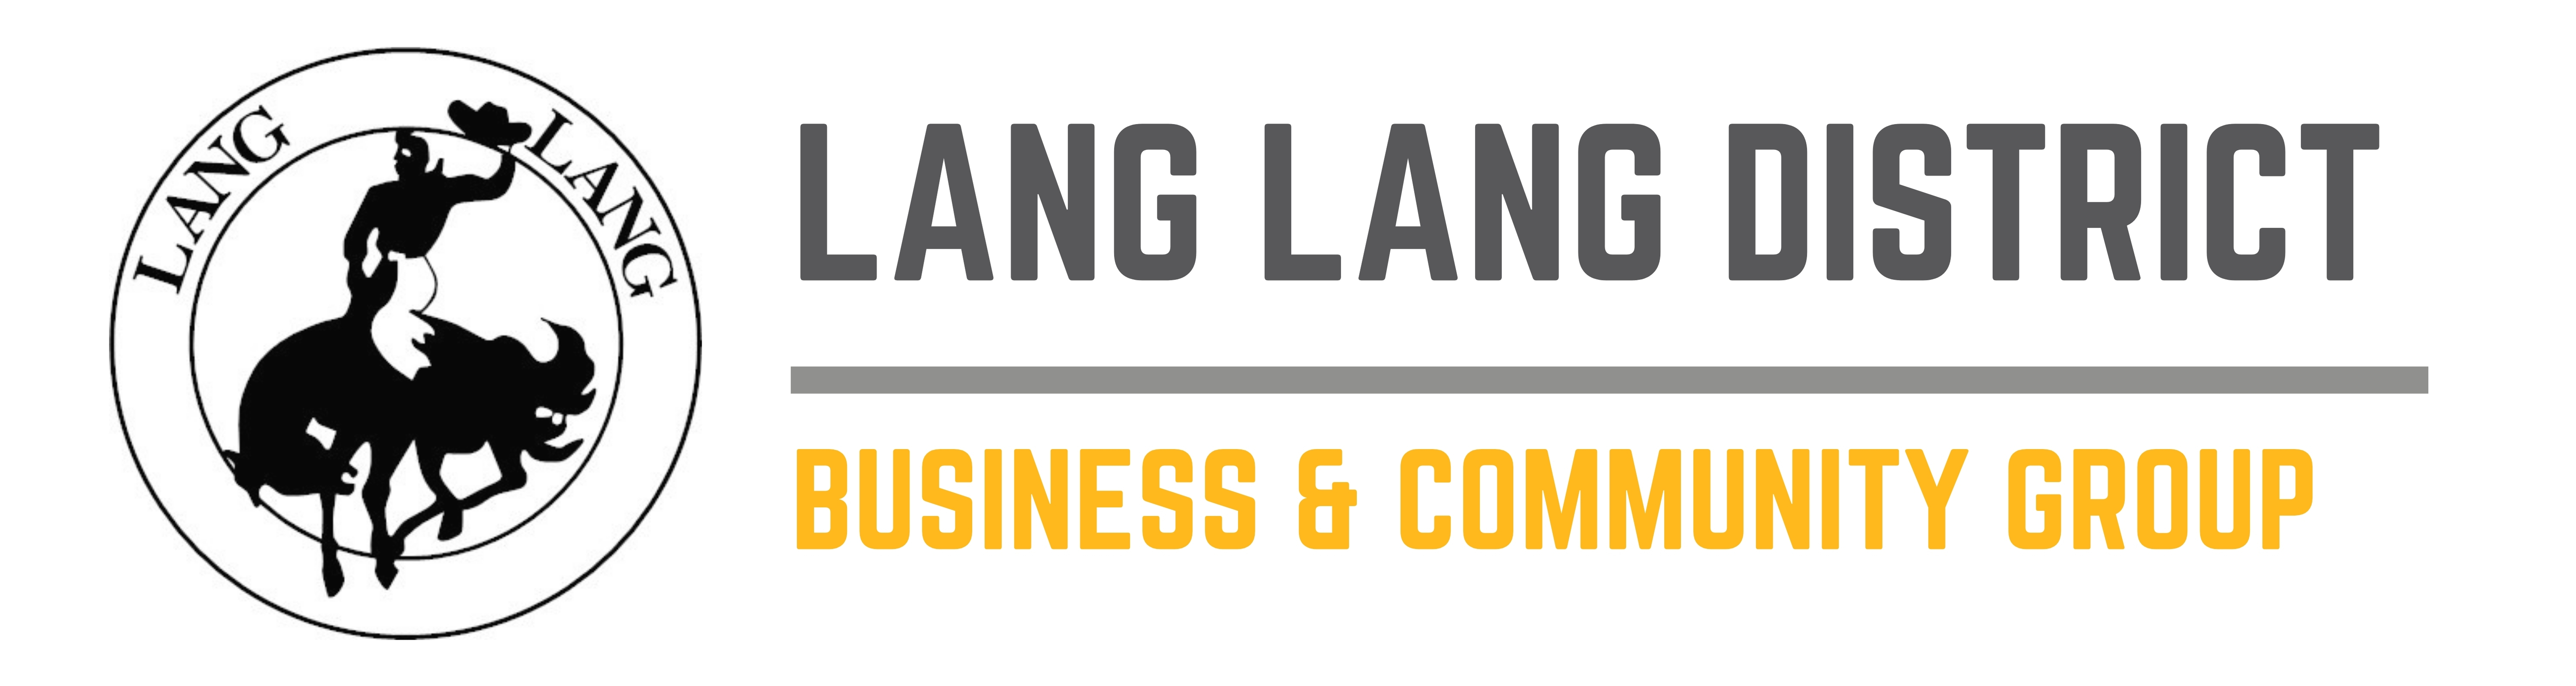 Lang Lang District Business & Community Group Group